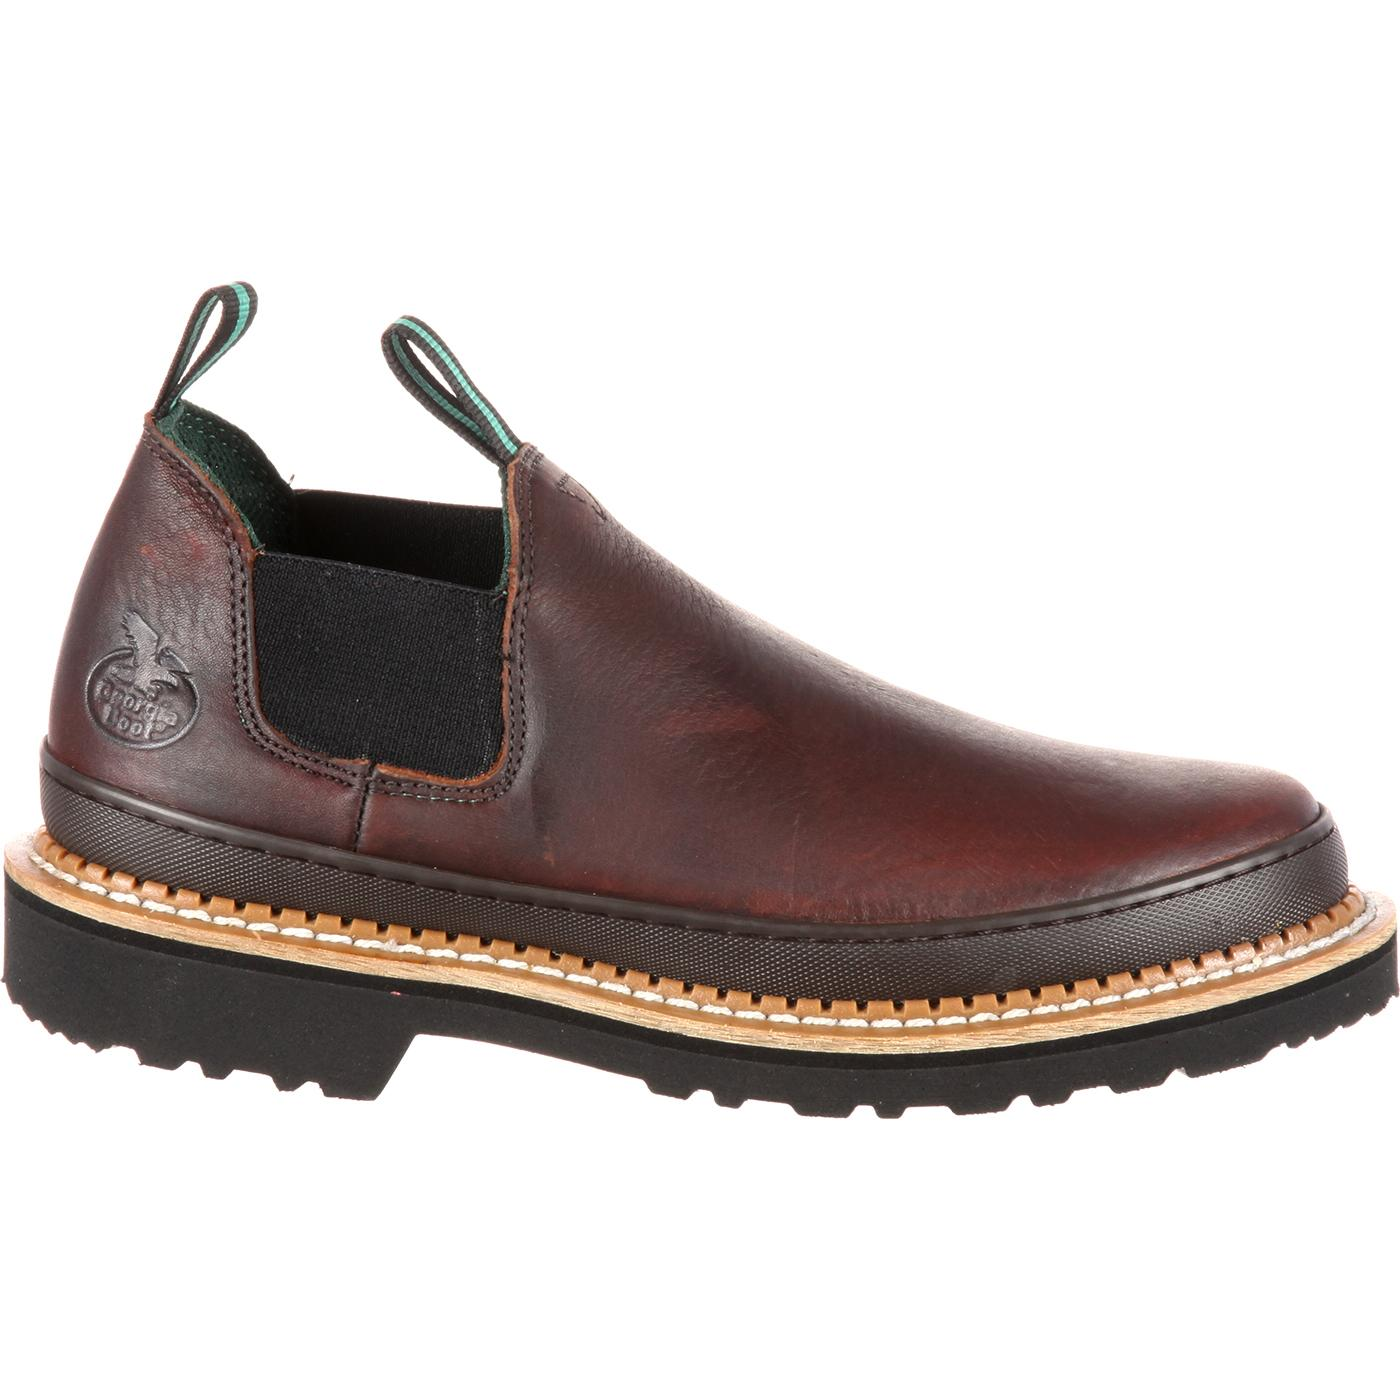 Best Leather Shoes For Work For Men